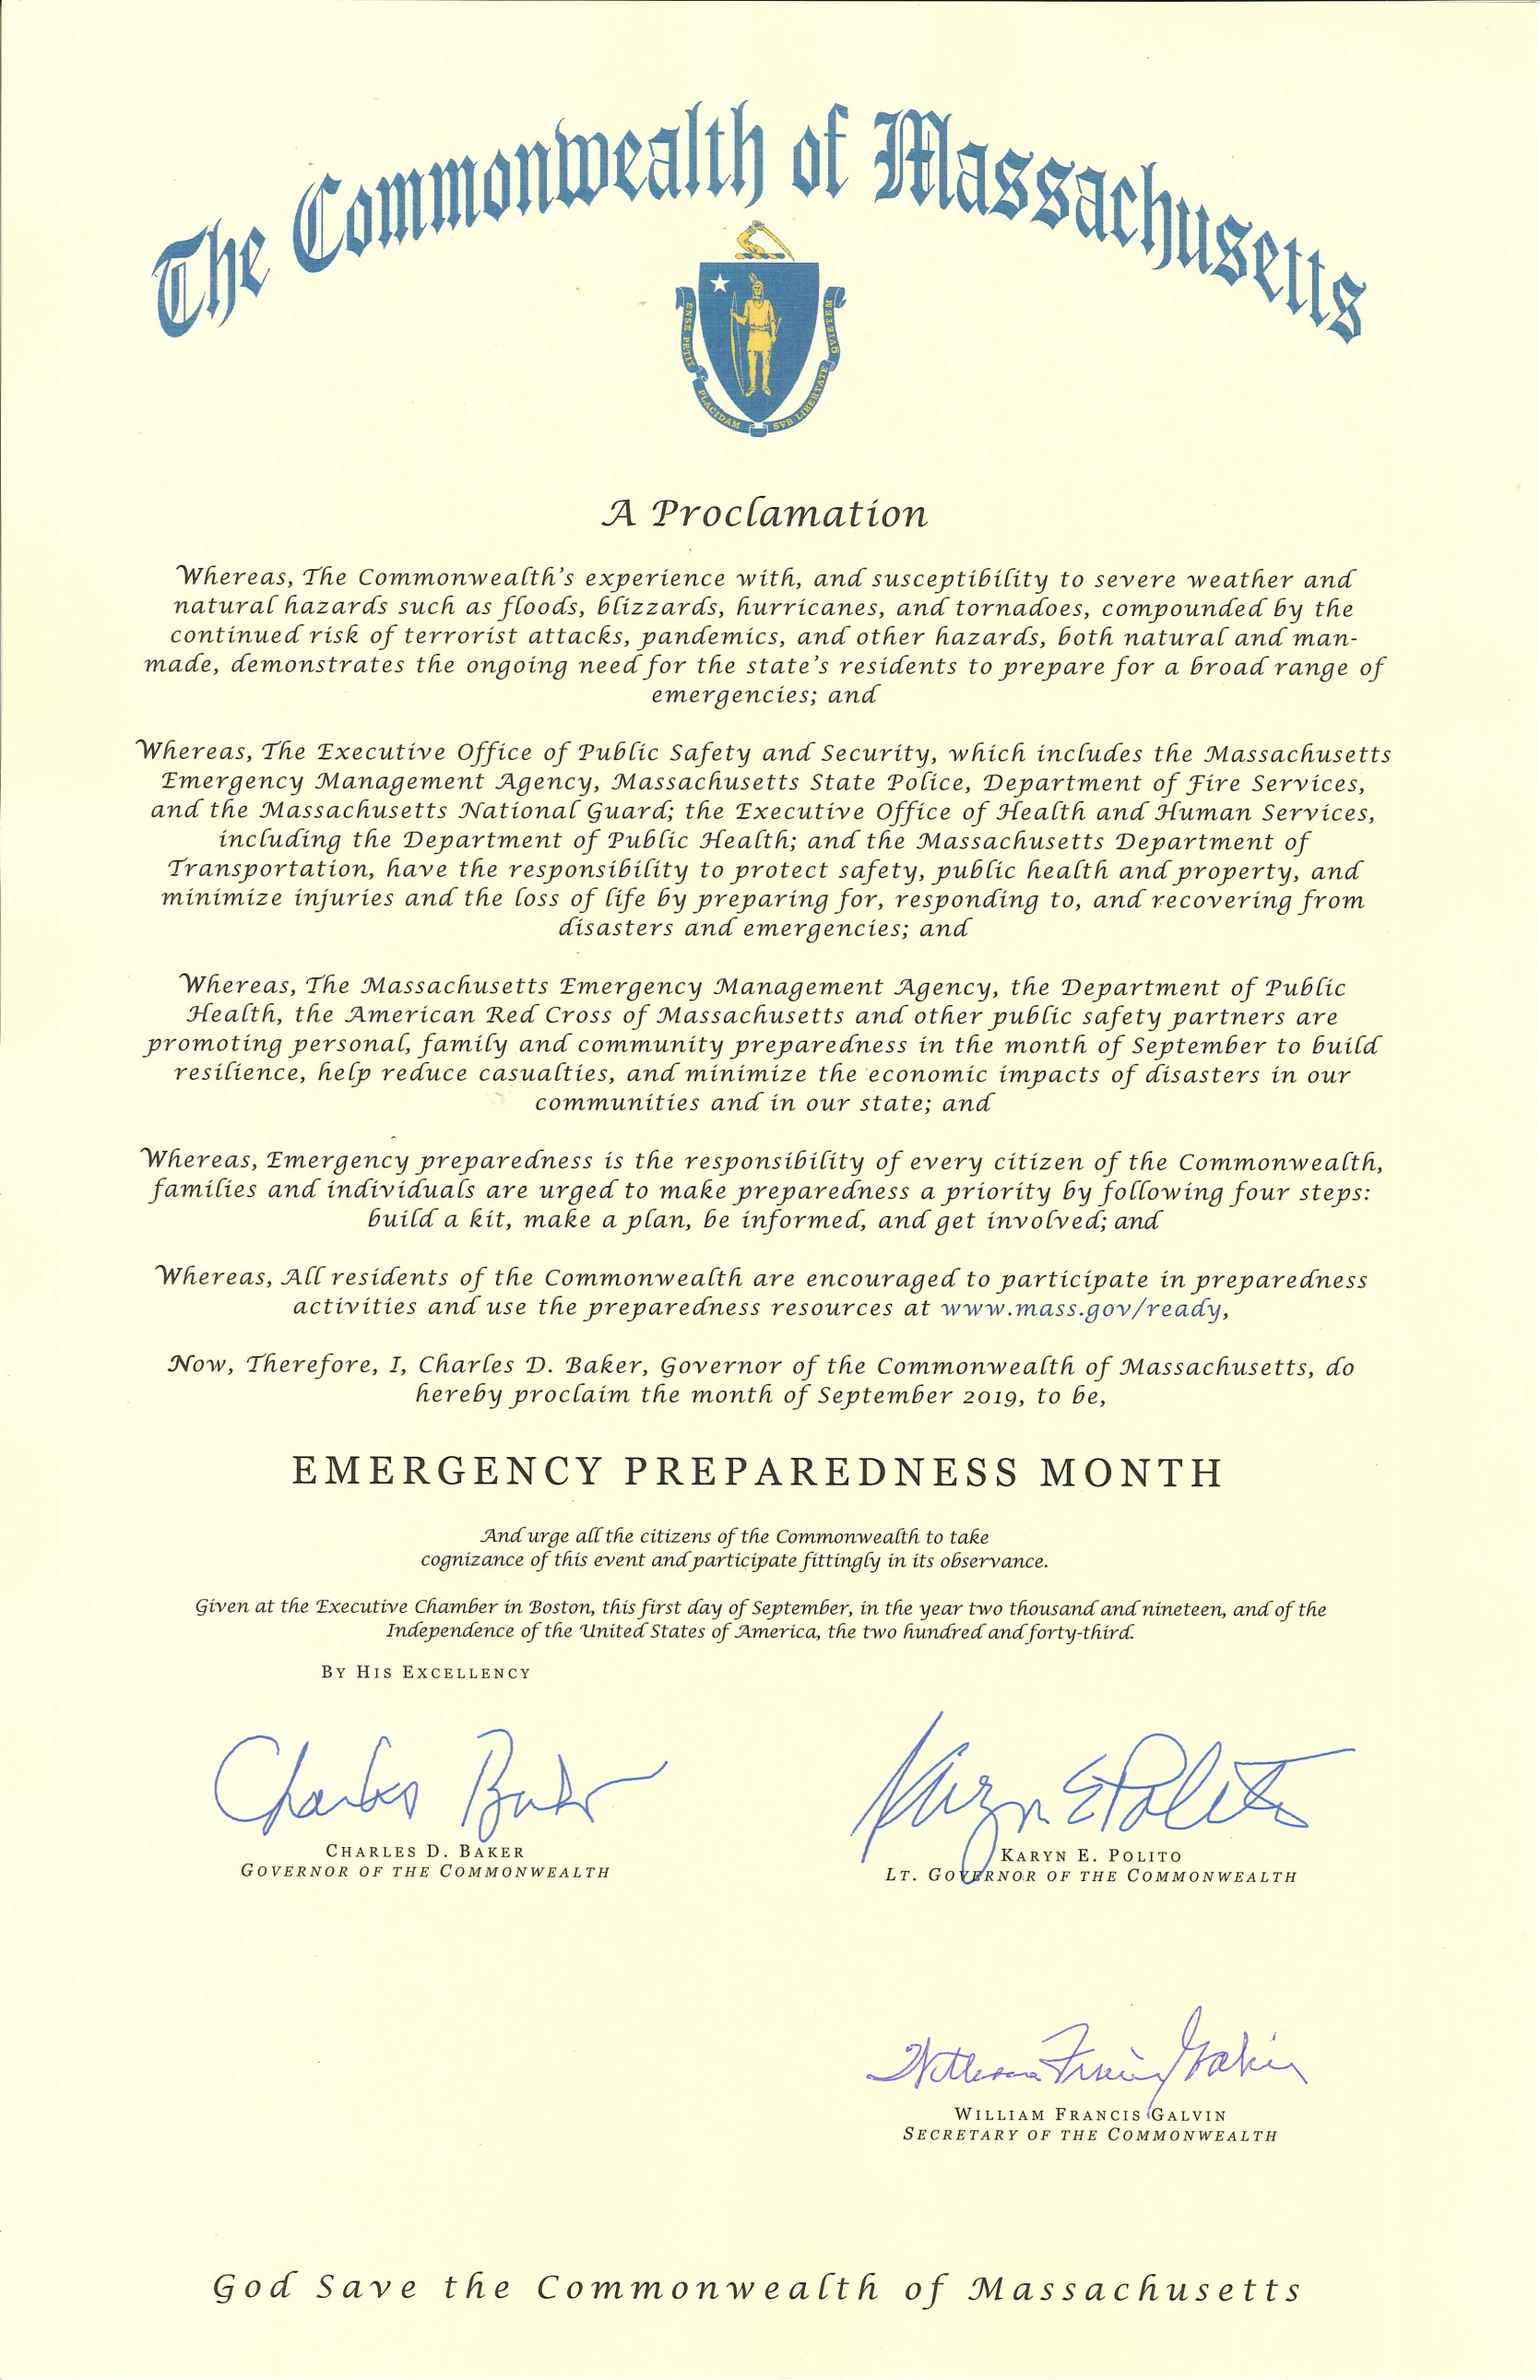 Governor Baker's official proclamation proclaiming September 2019 to be Emergency Preparedness Month